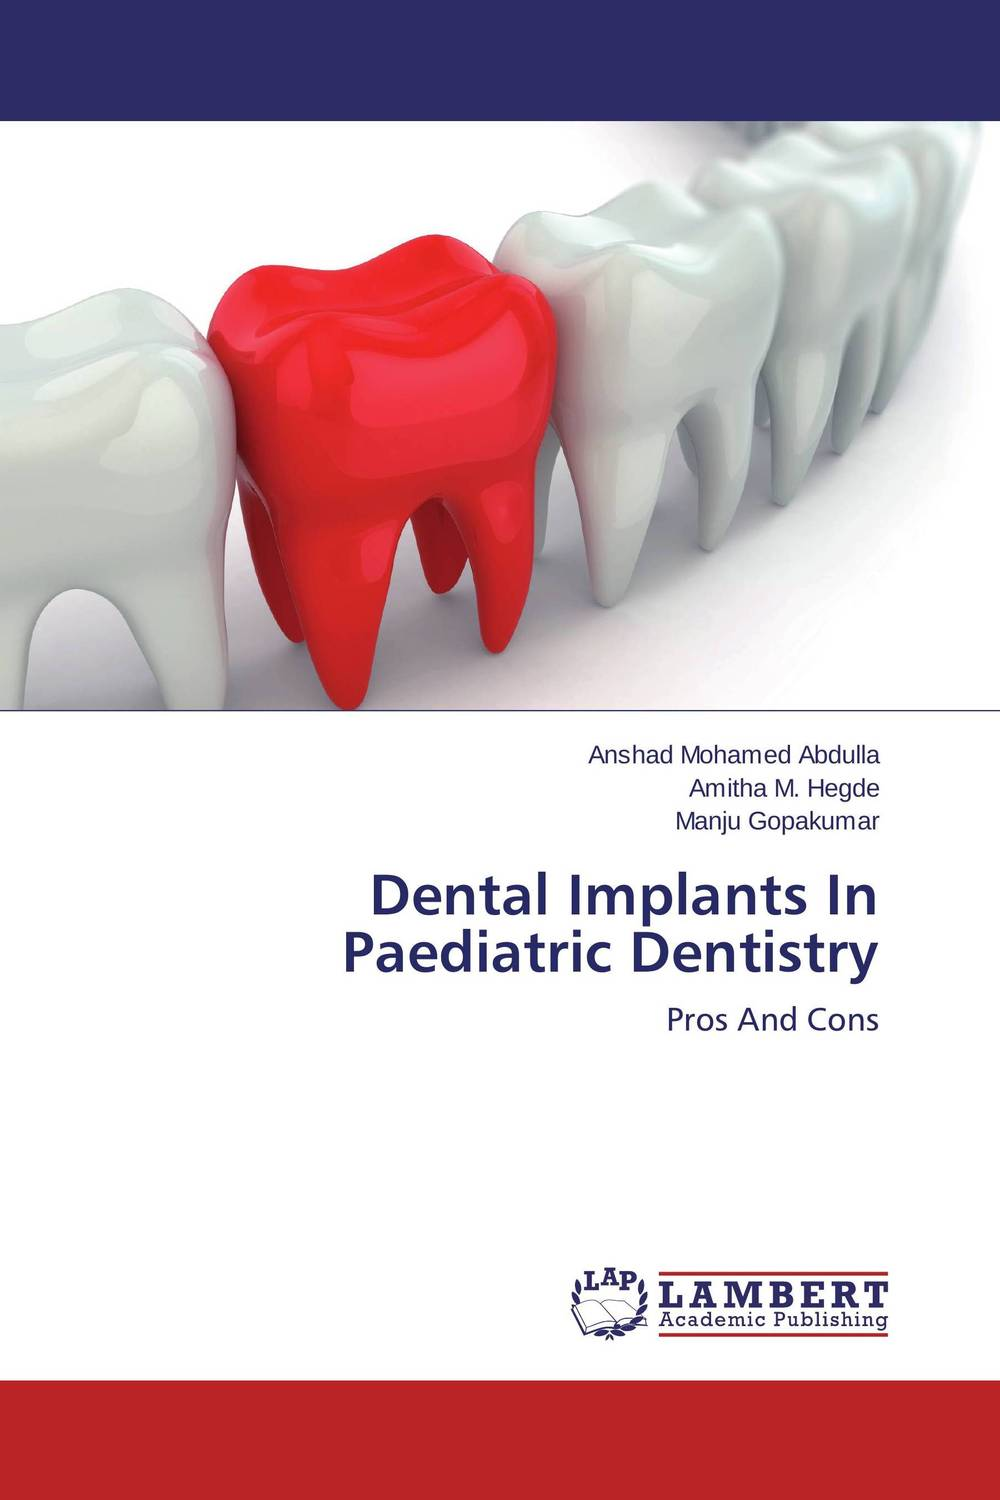 Dental Implants In Paediatric Dentistry wavelets processor